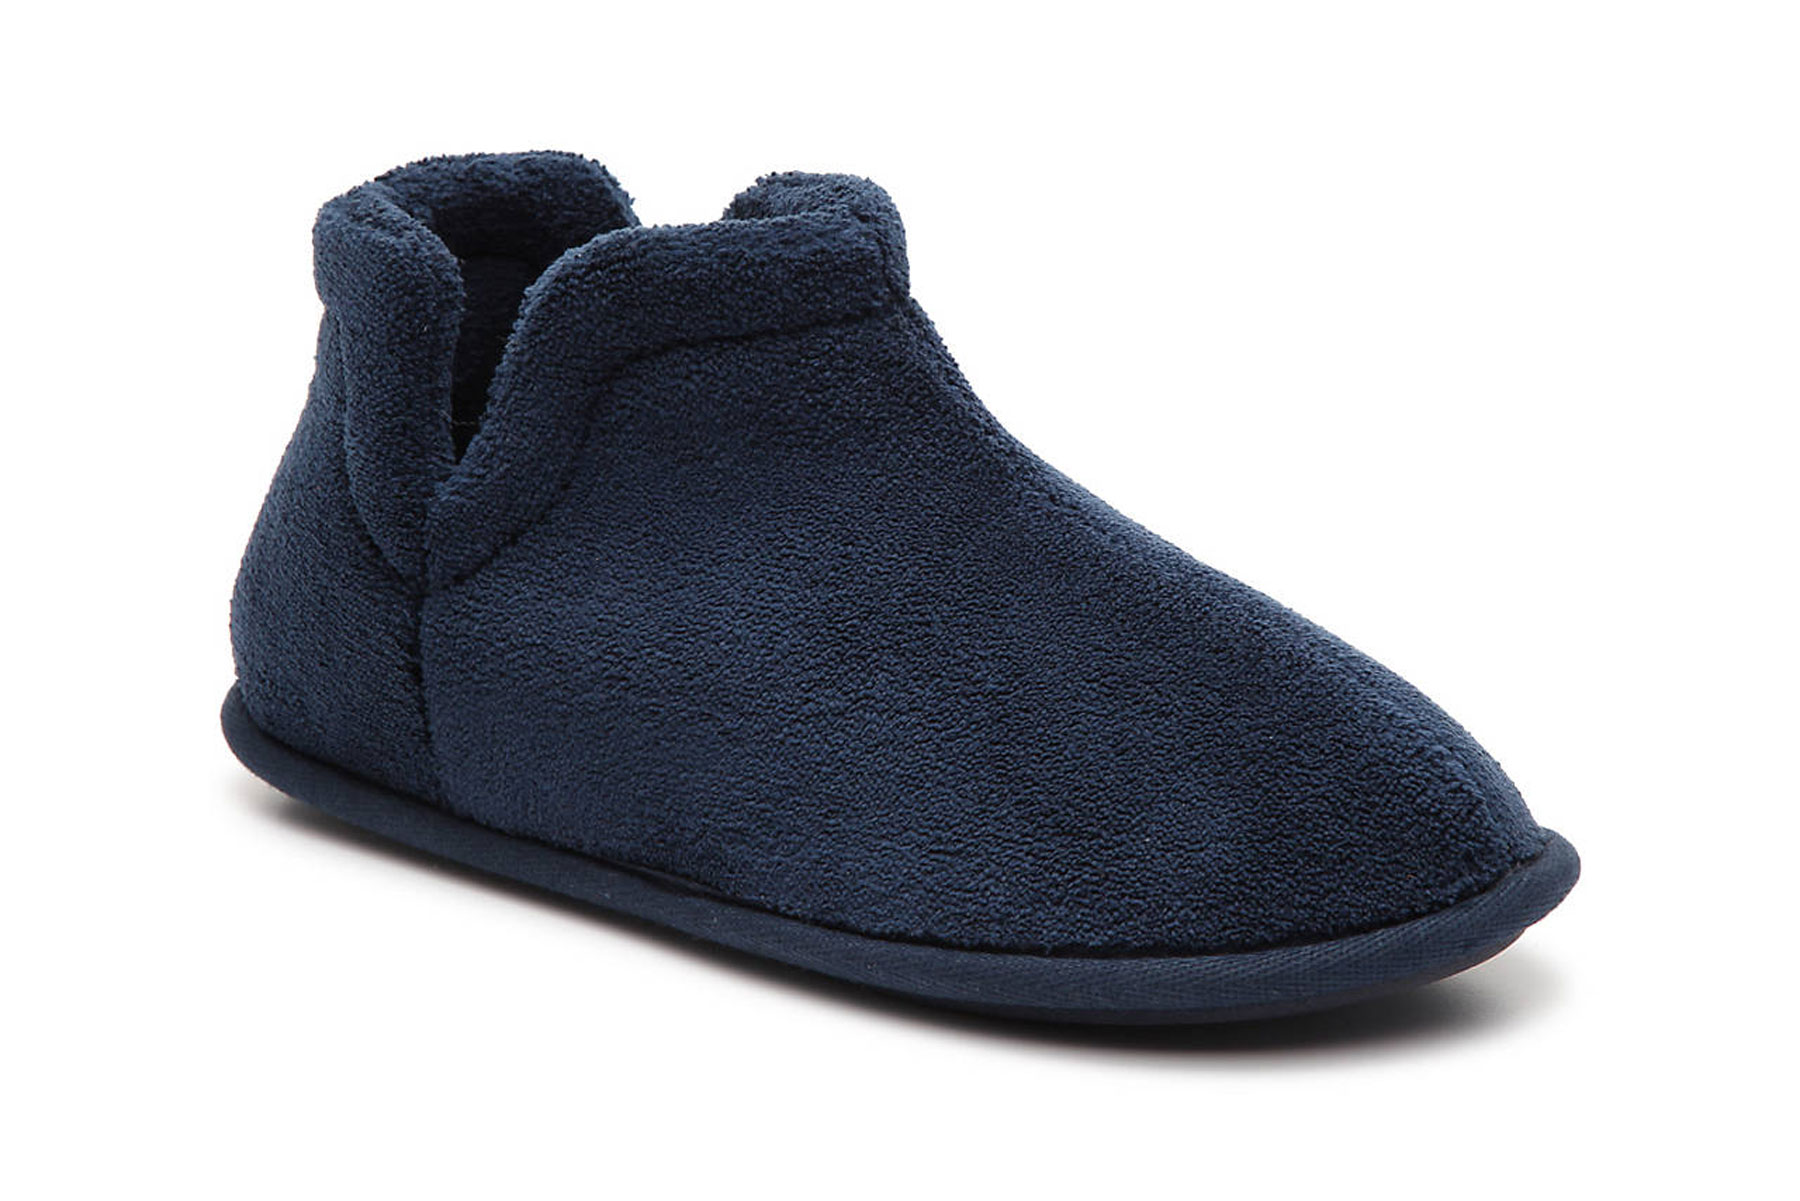 Navy plush slipper boot